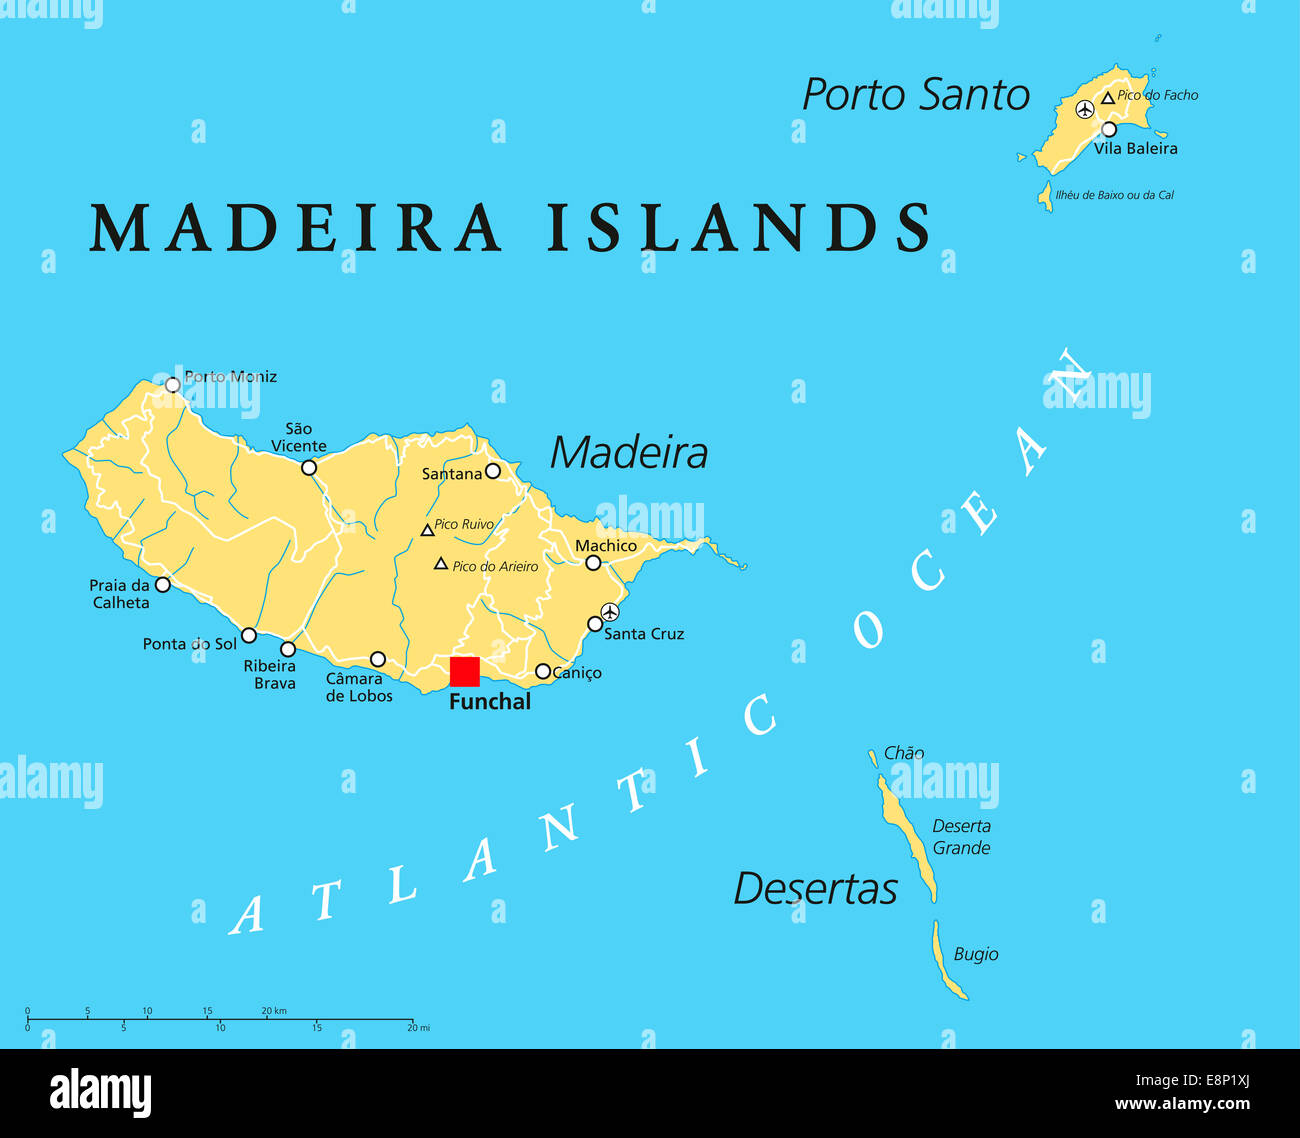 Where Is Madeira Island On The World Map